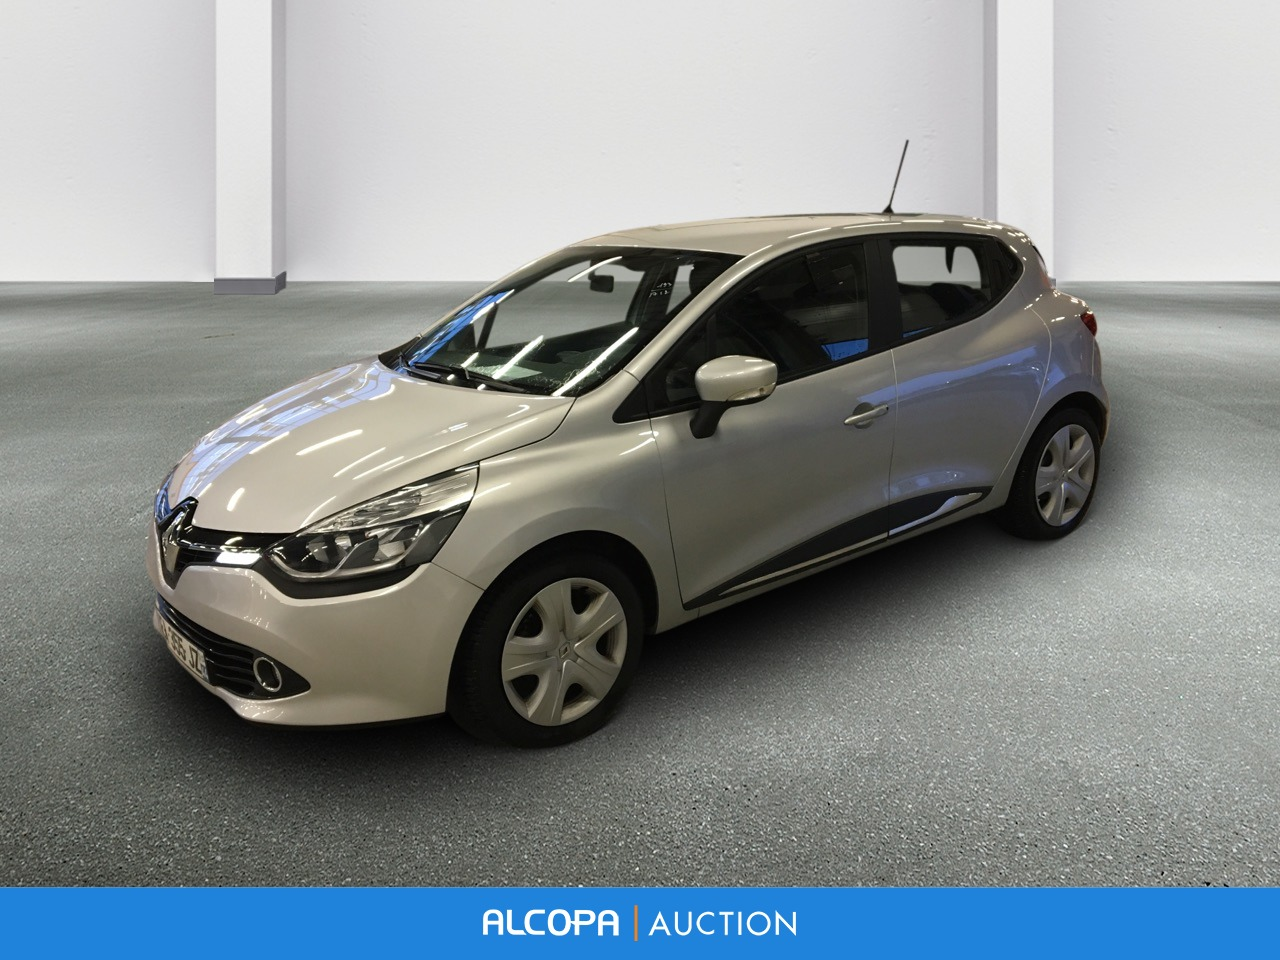 renault clio iv business clio iv dci 75 business alcopa auction. Black Bedroom Furniture Sets. Home Design Ideas